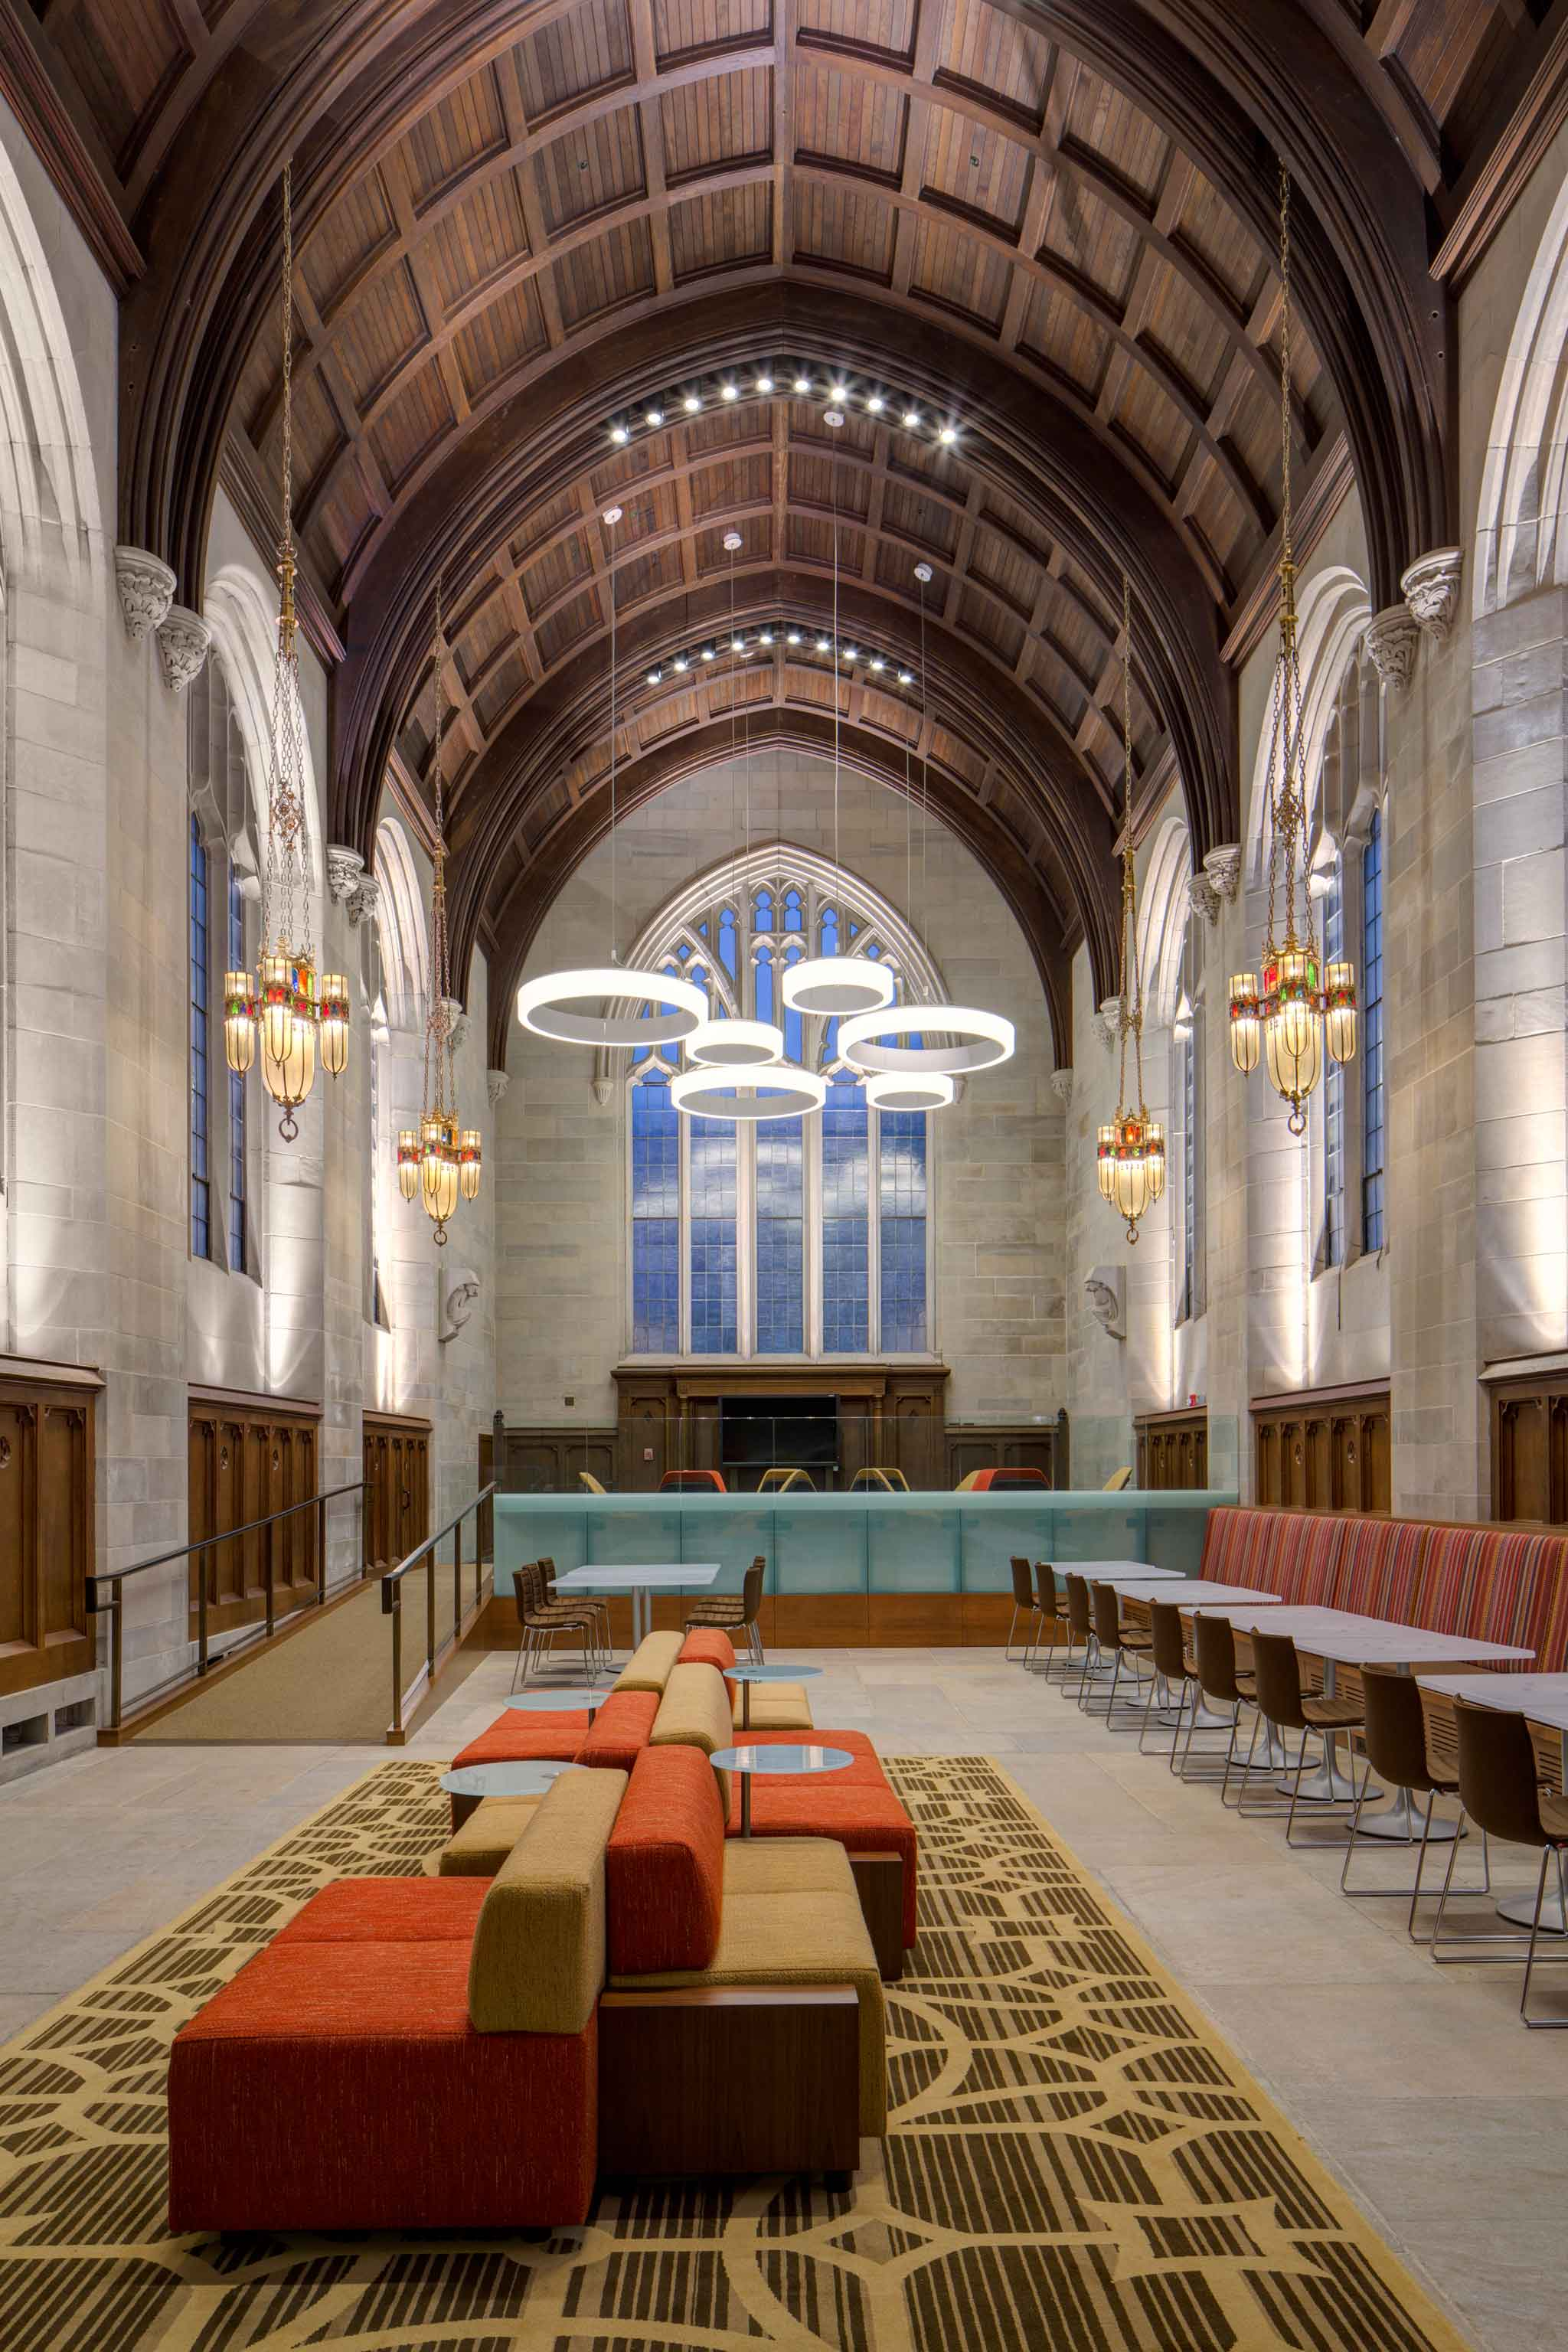 University of Chicago Saieh Hall for Economics, Ann Beha Architects (Boston) with Gensler (Chicago), Carpet by Creative Matters | Image courtesy of Tom Rossiter / Creative Matters